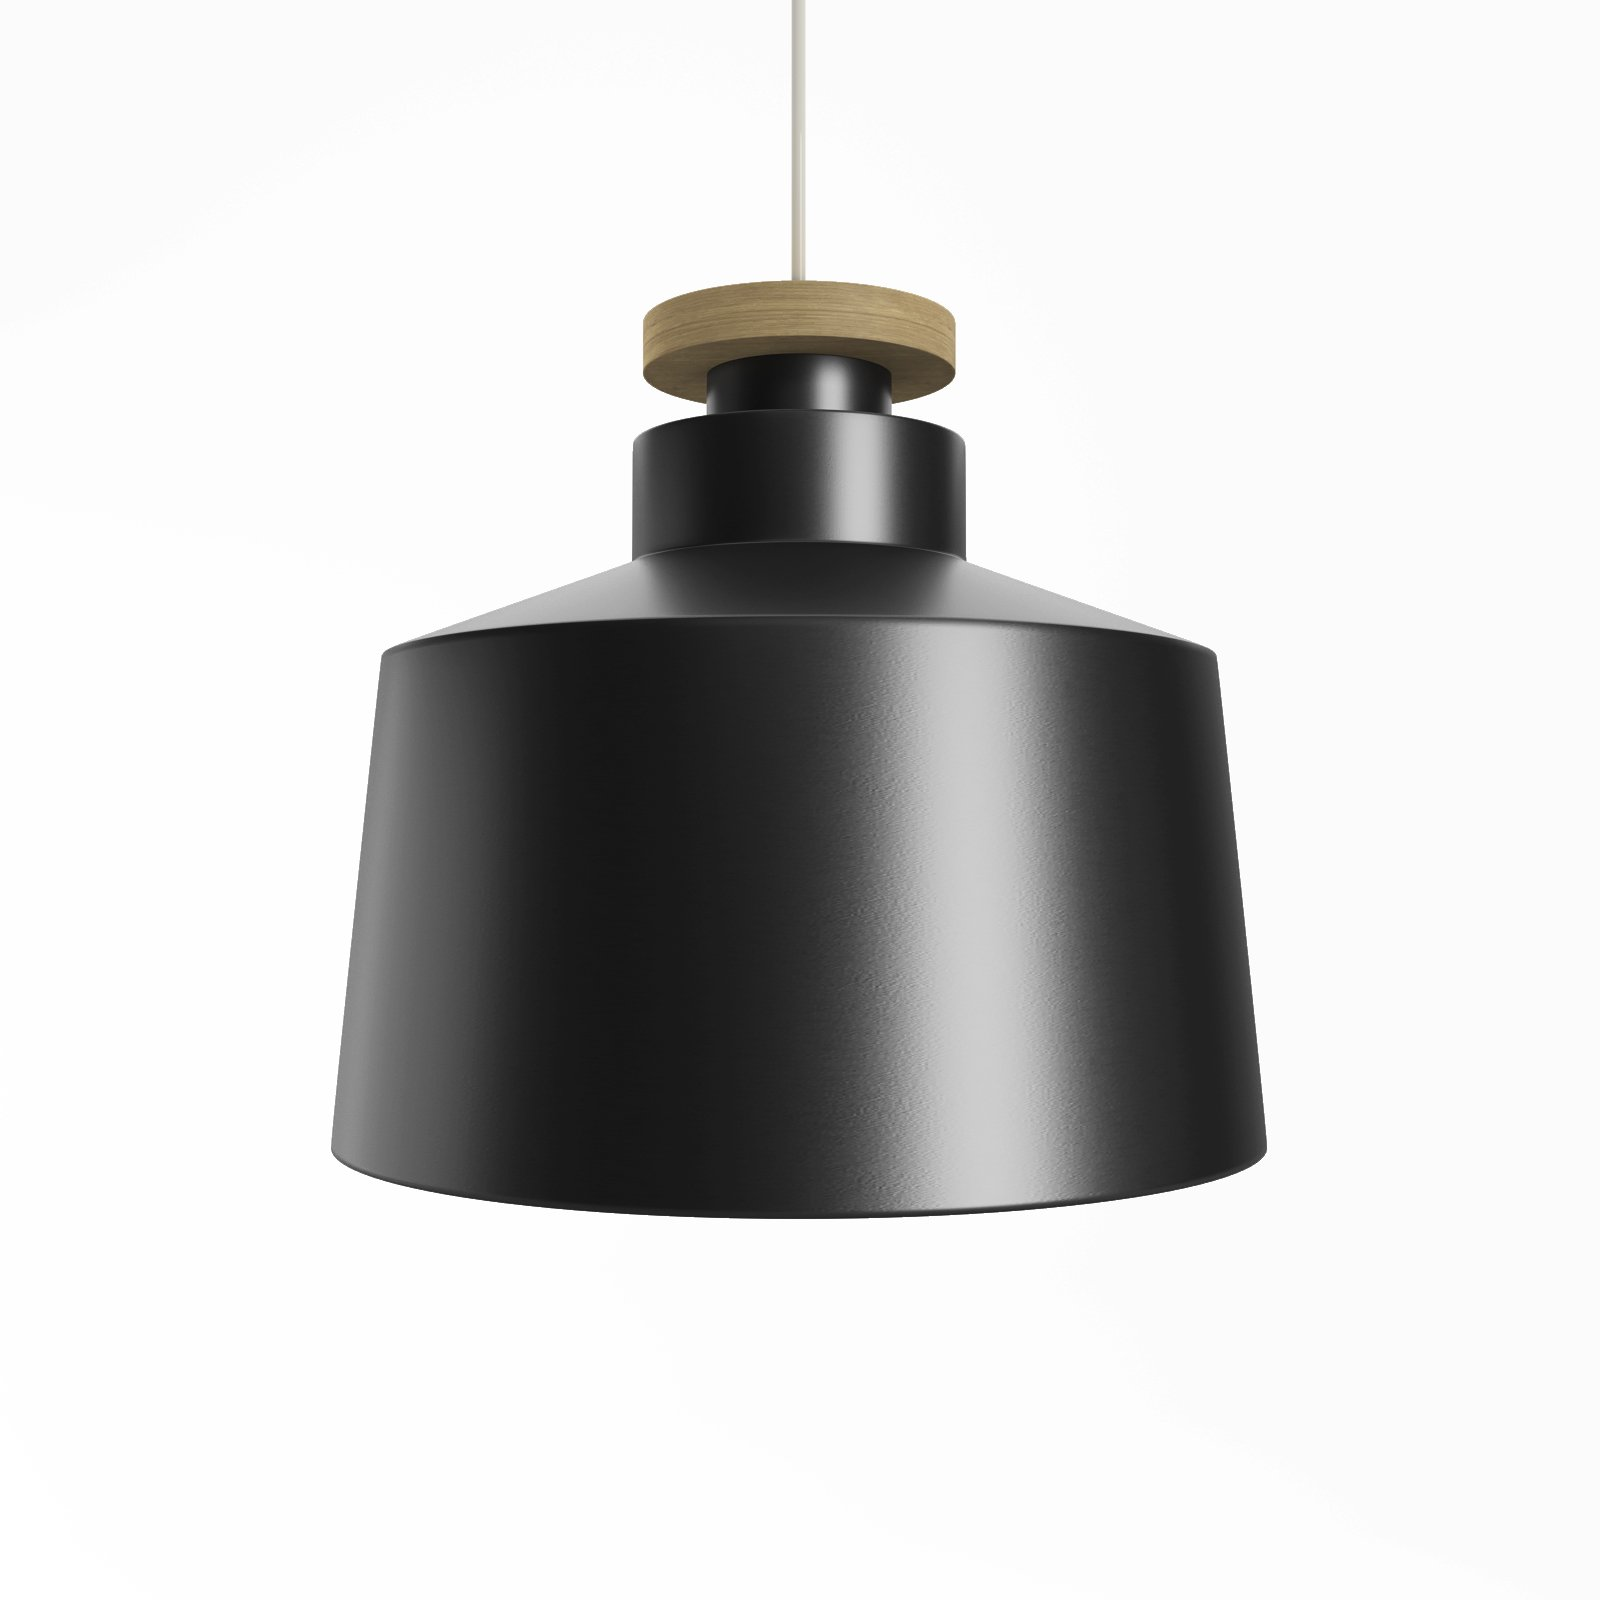 Buy Percole Pendant Light For Dining Room Online